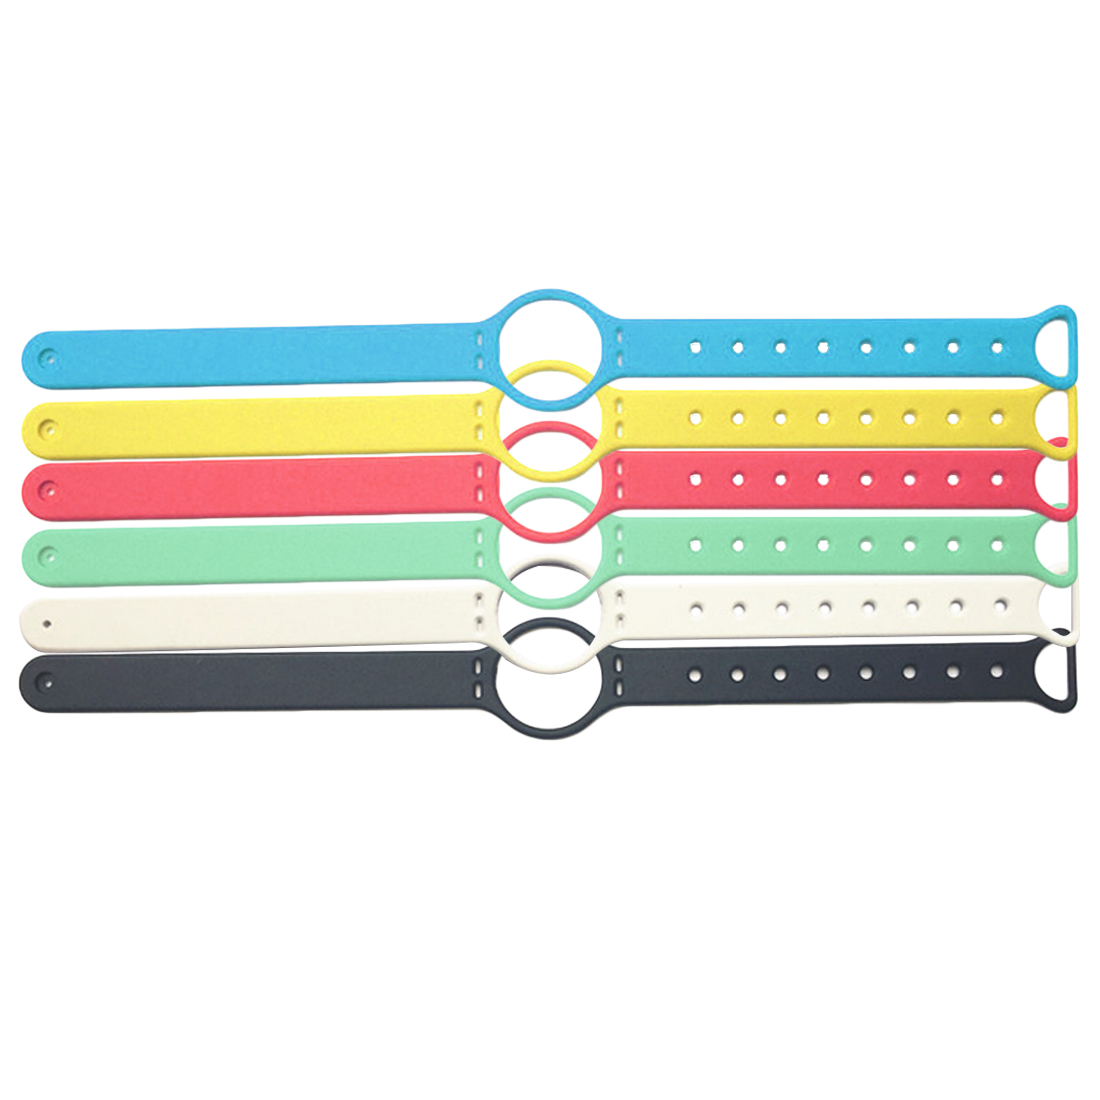 Misfit Shine Replacement Wristband Men 39 s And Women 39 s Watch Strap Misfit Shine Dispensing Metal Buckle Strap Random Color in Watchbands from Watches